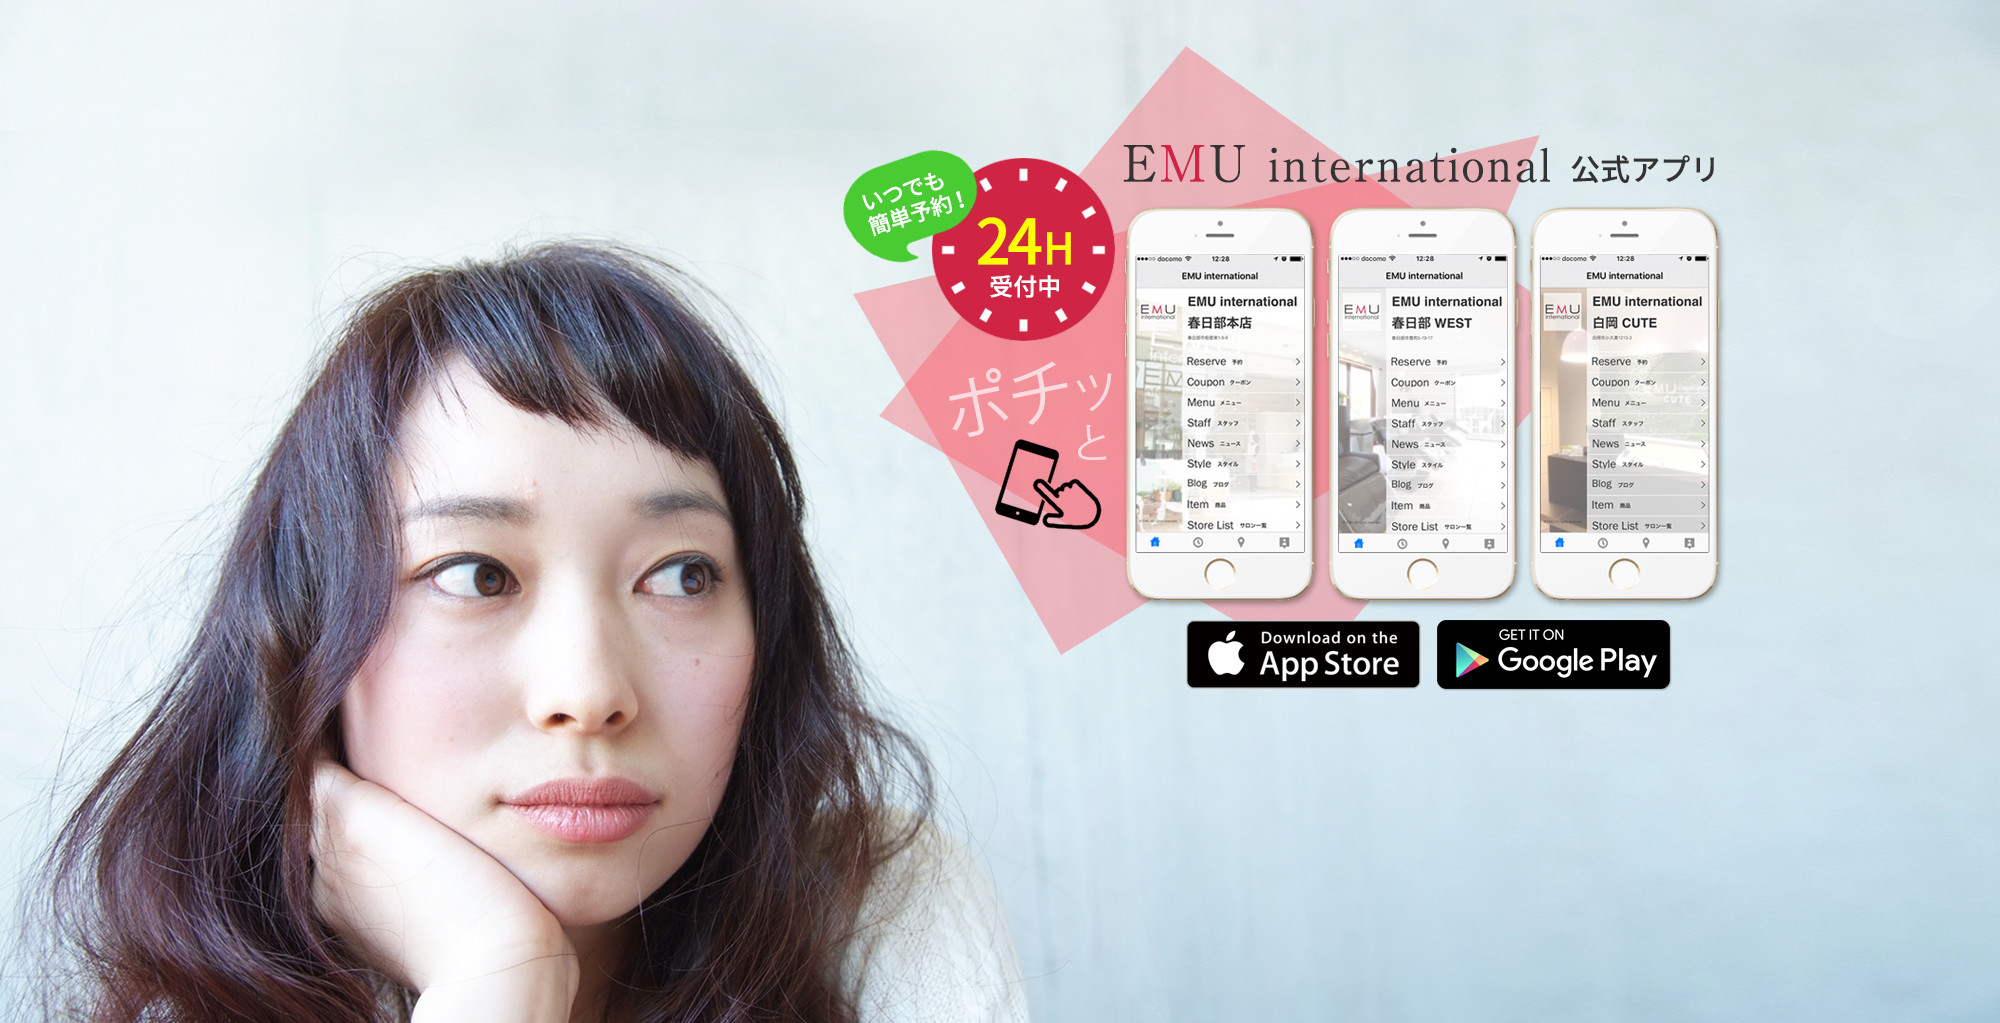 EMU international 公式アプリ